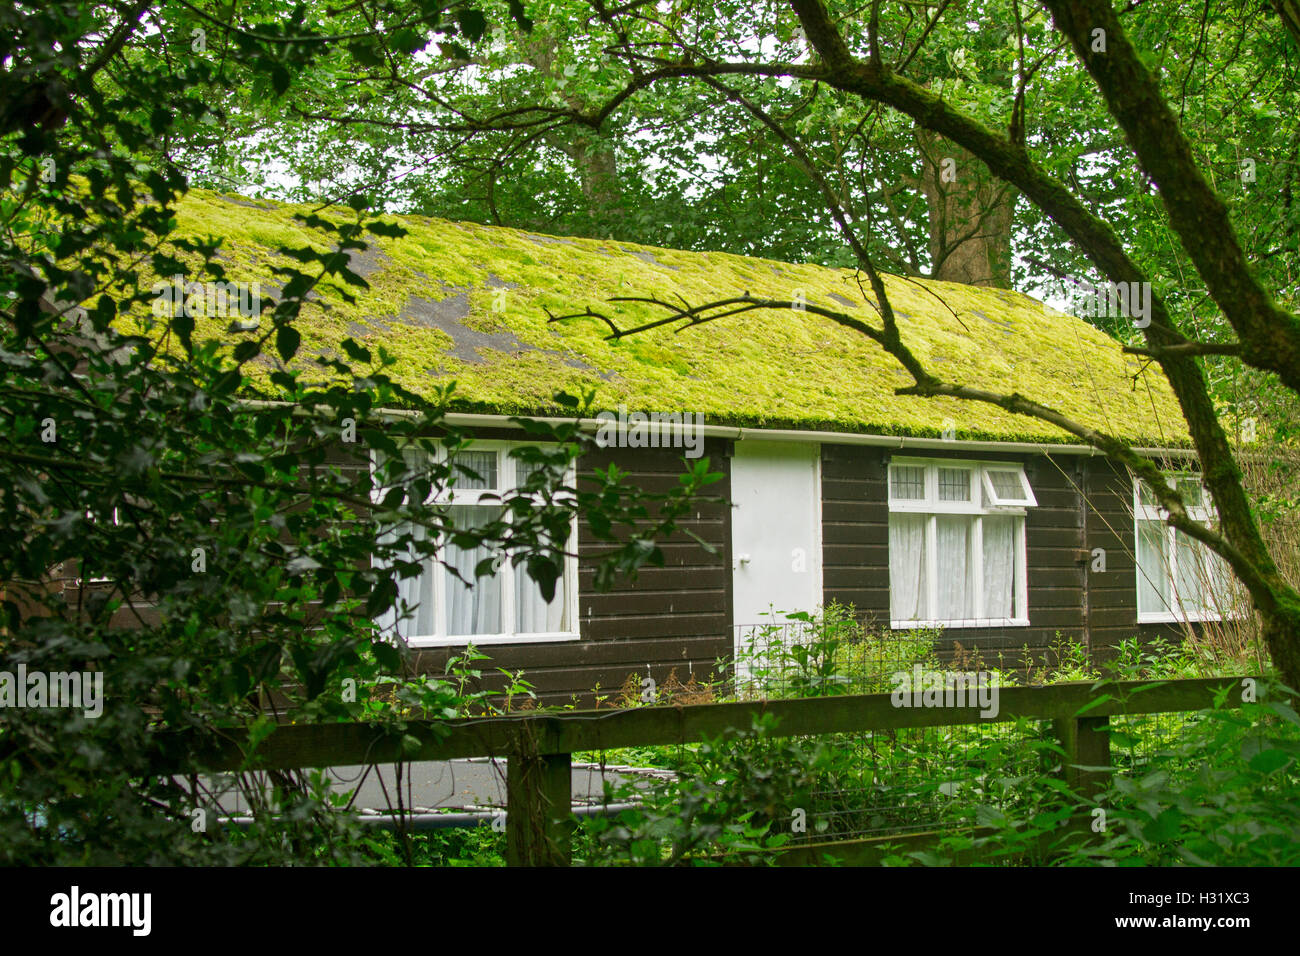 Emerald green moss growing on and covering entire roof of brown timber building in damp shady woodlands in England - Stock Image